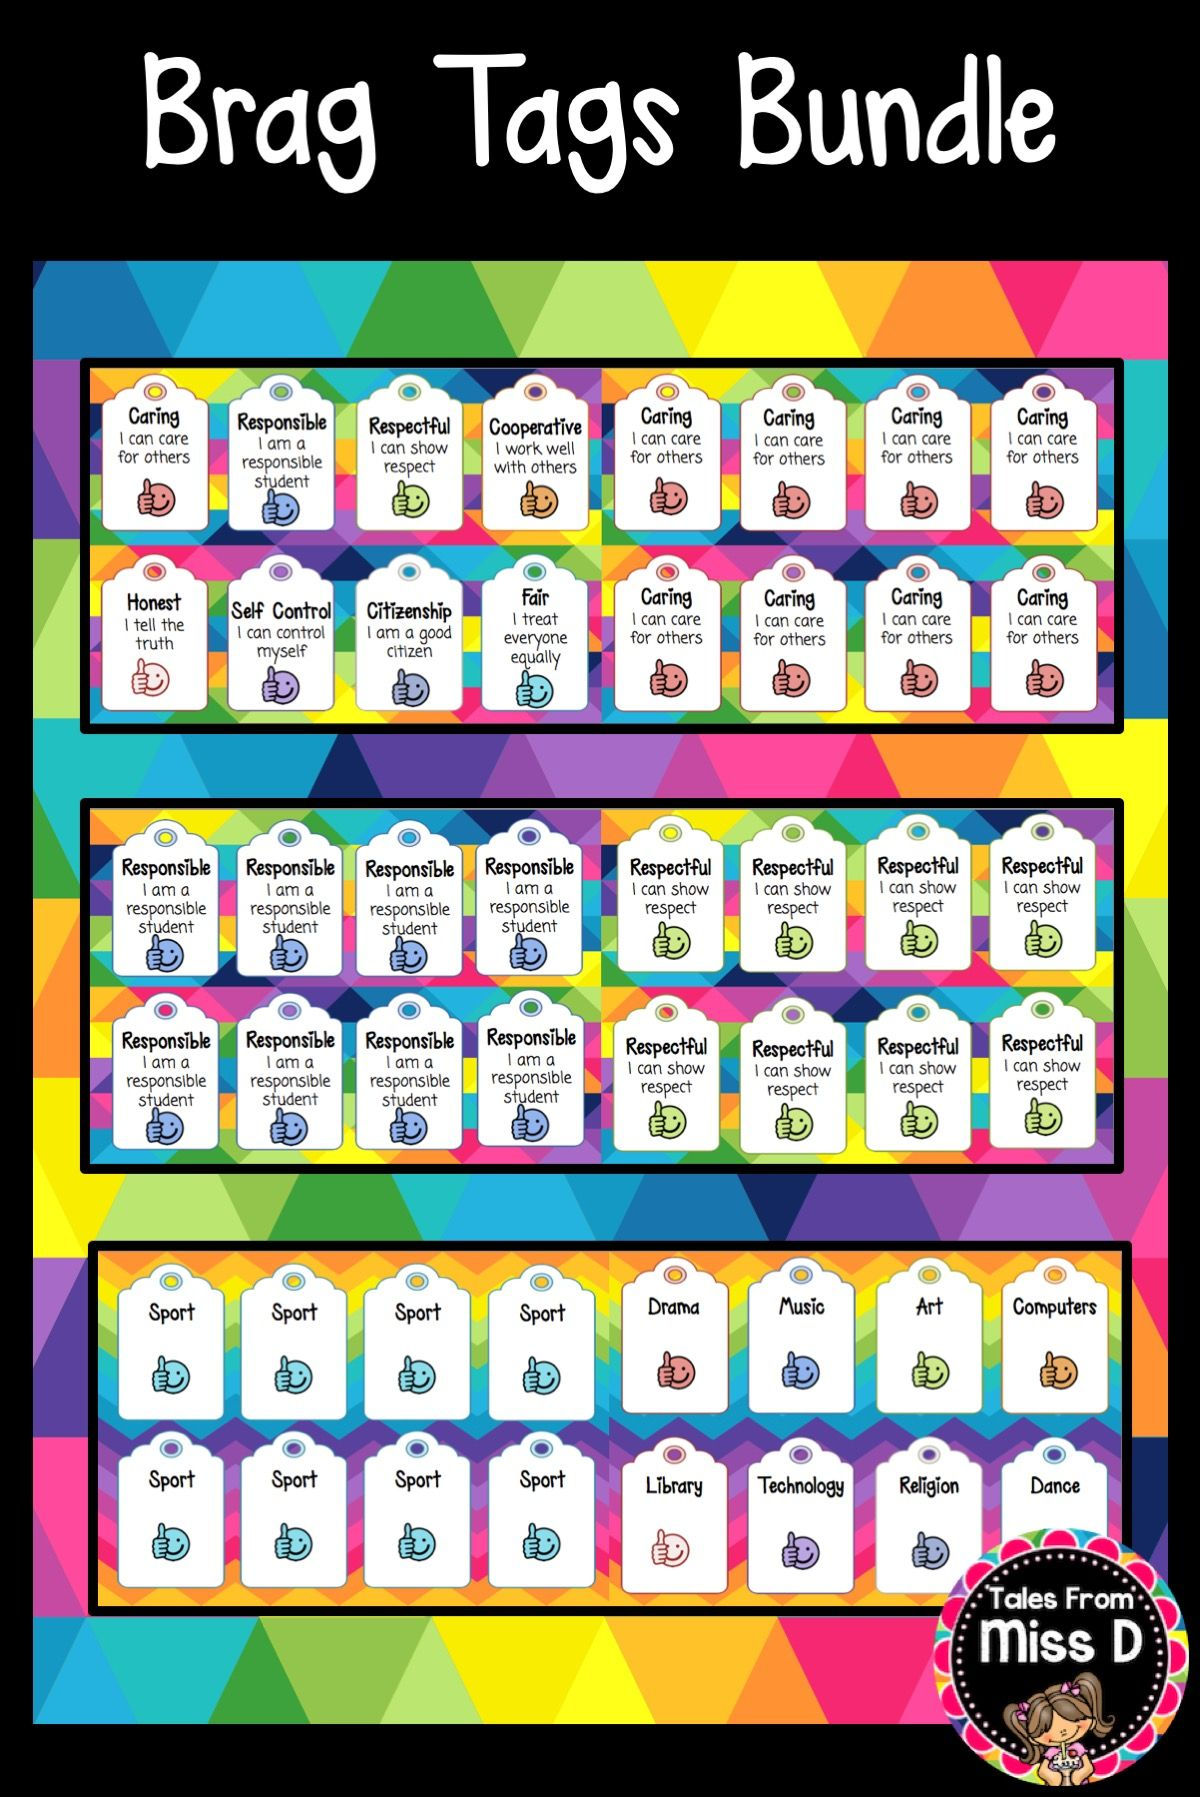 Behavior and Subject Brag Tags #sciencehistory